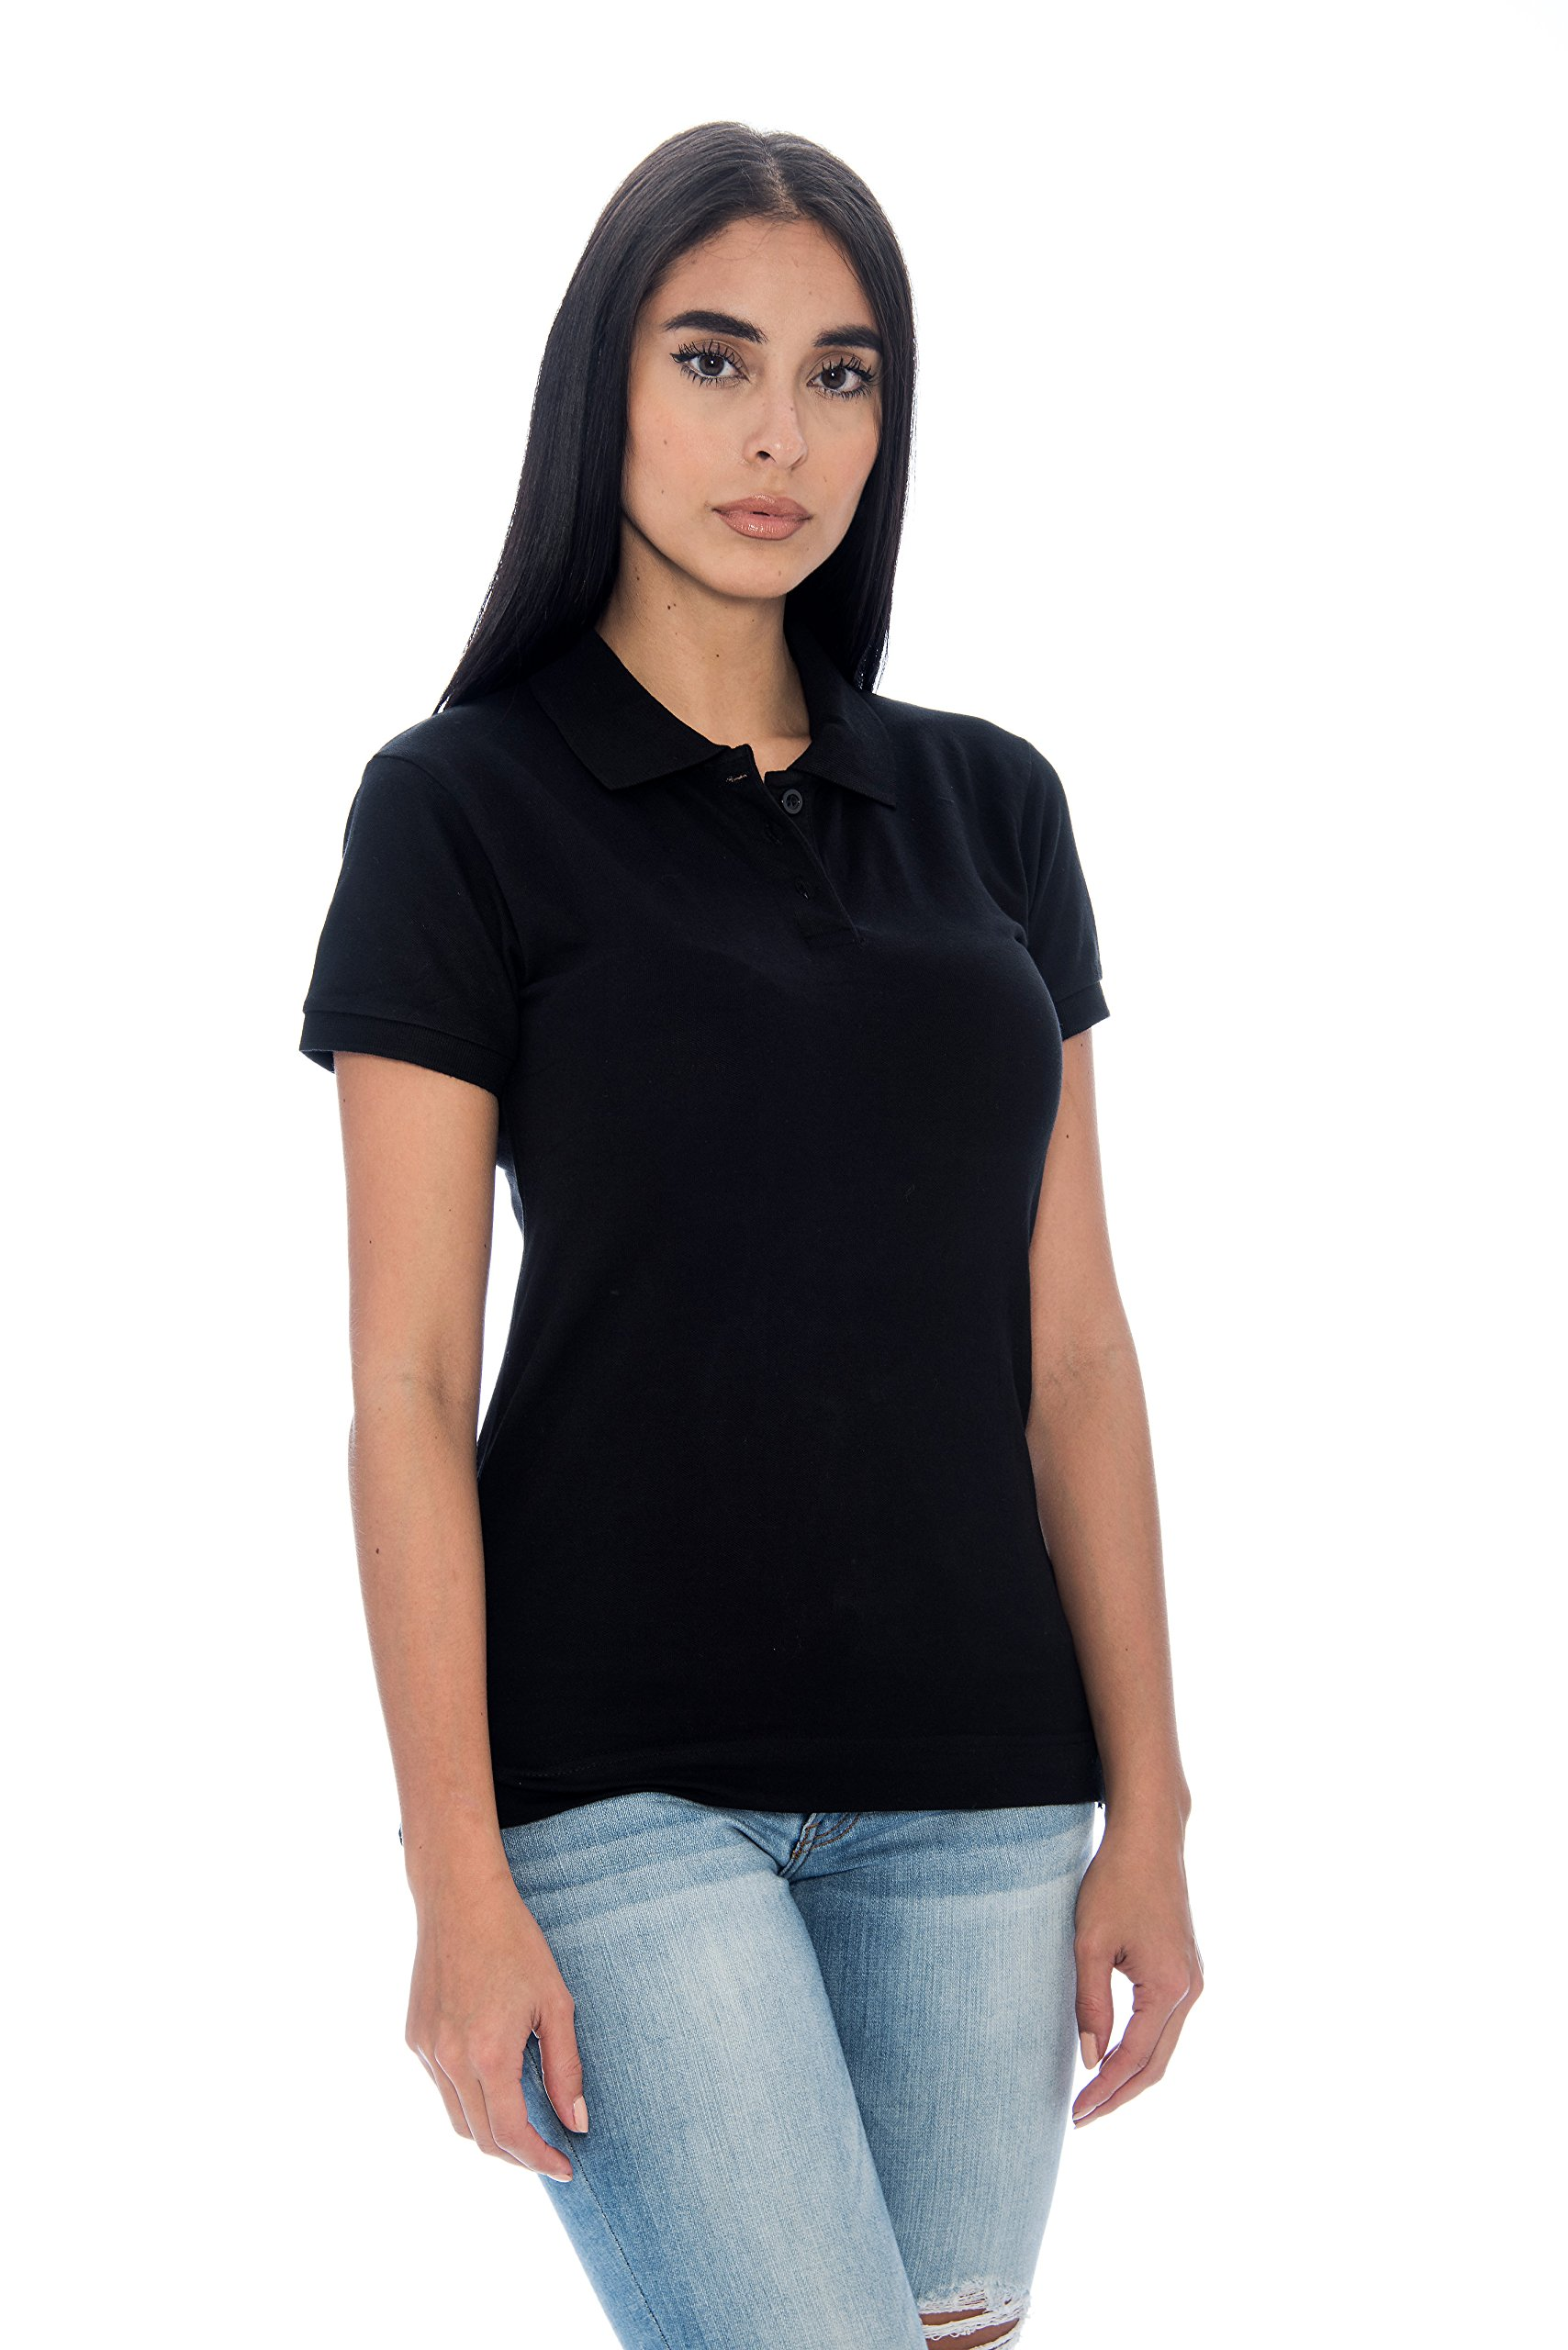 Unique Styles Girls Short Sleeve Polo Shirt 3 Button Collar Lightweight Top (Black, Large)